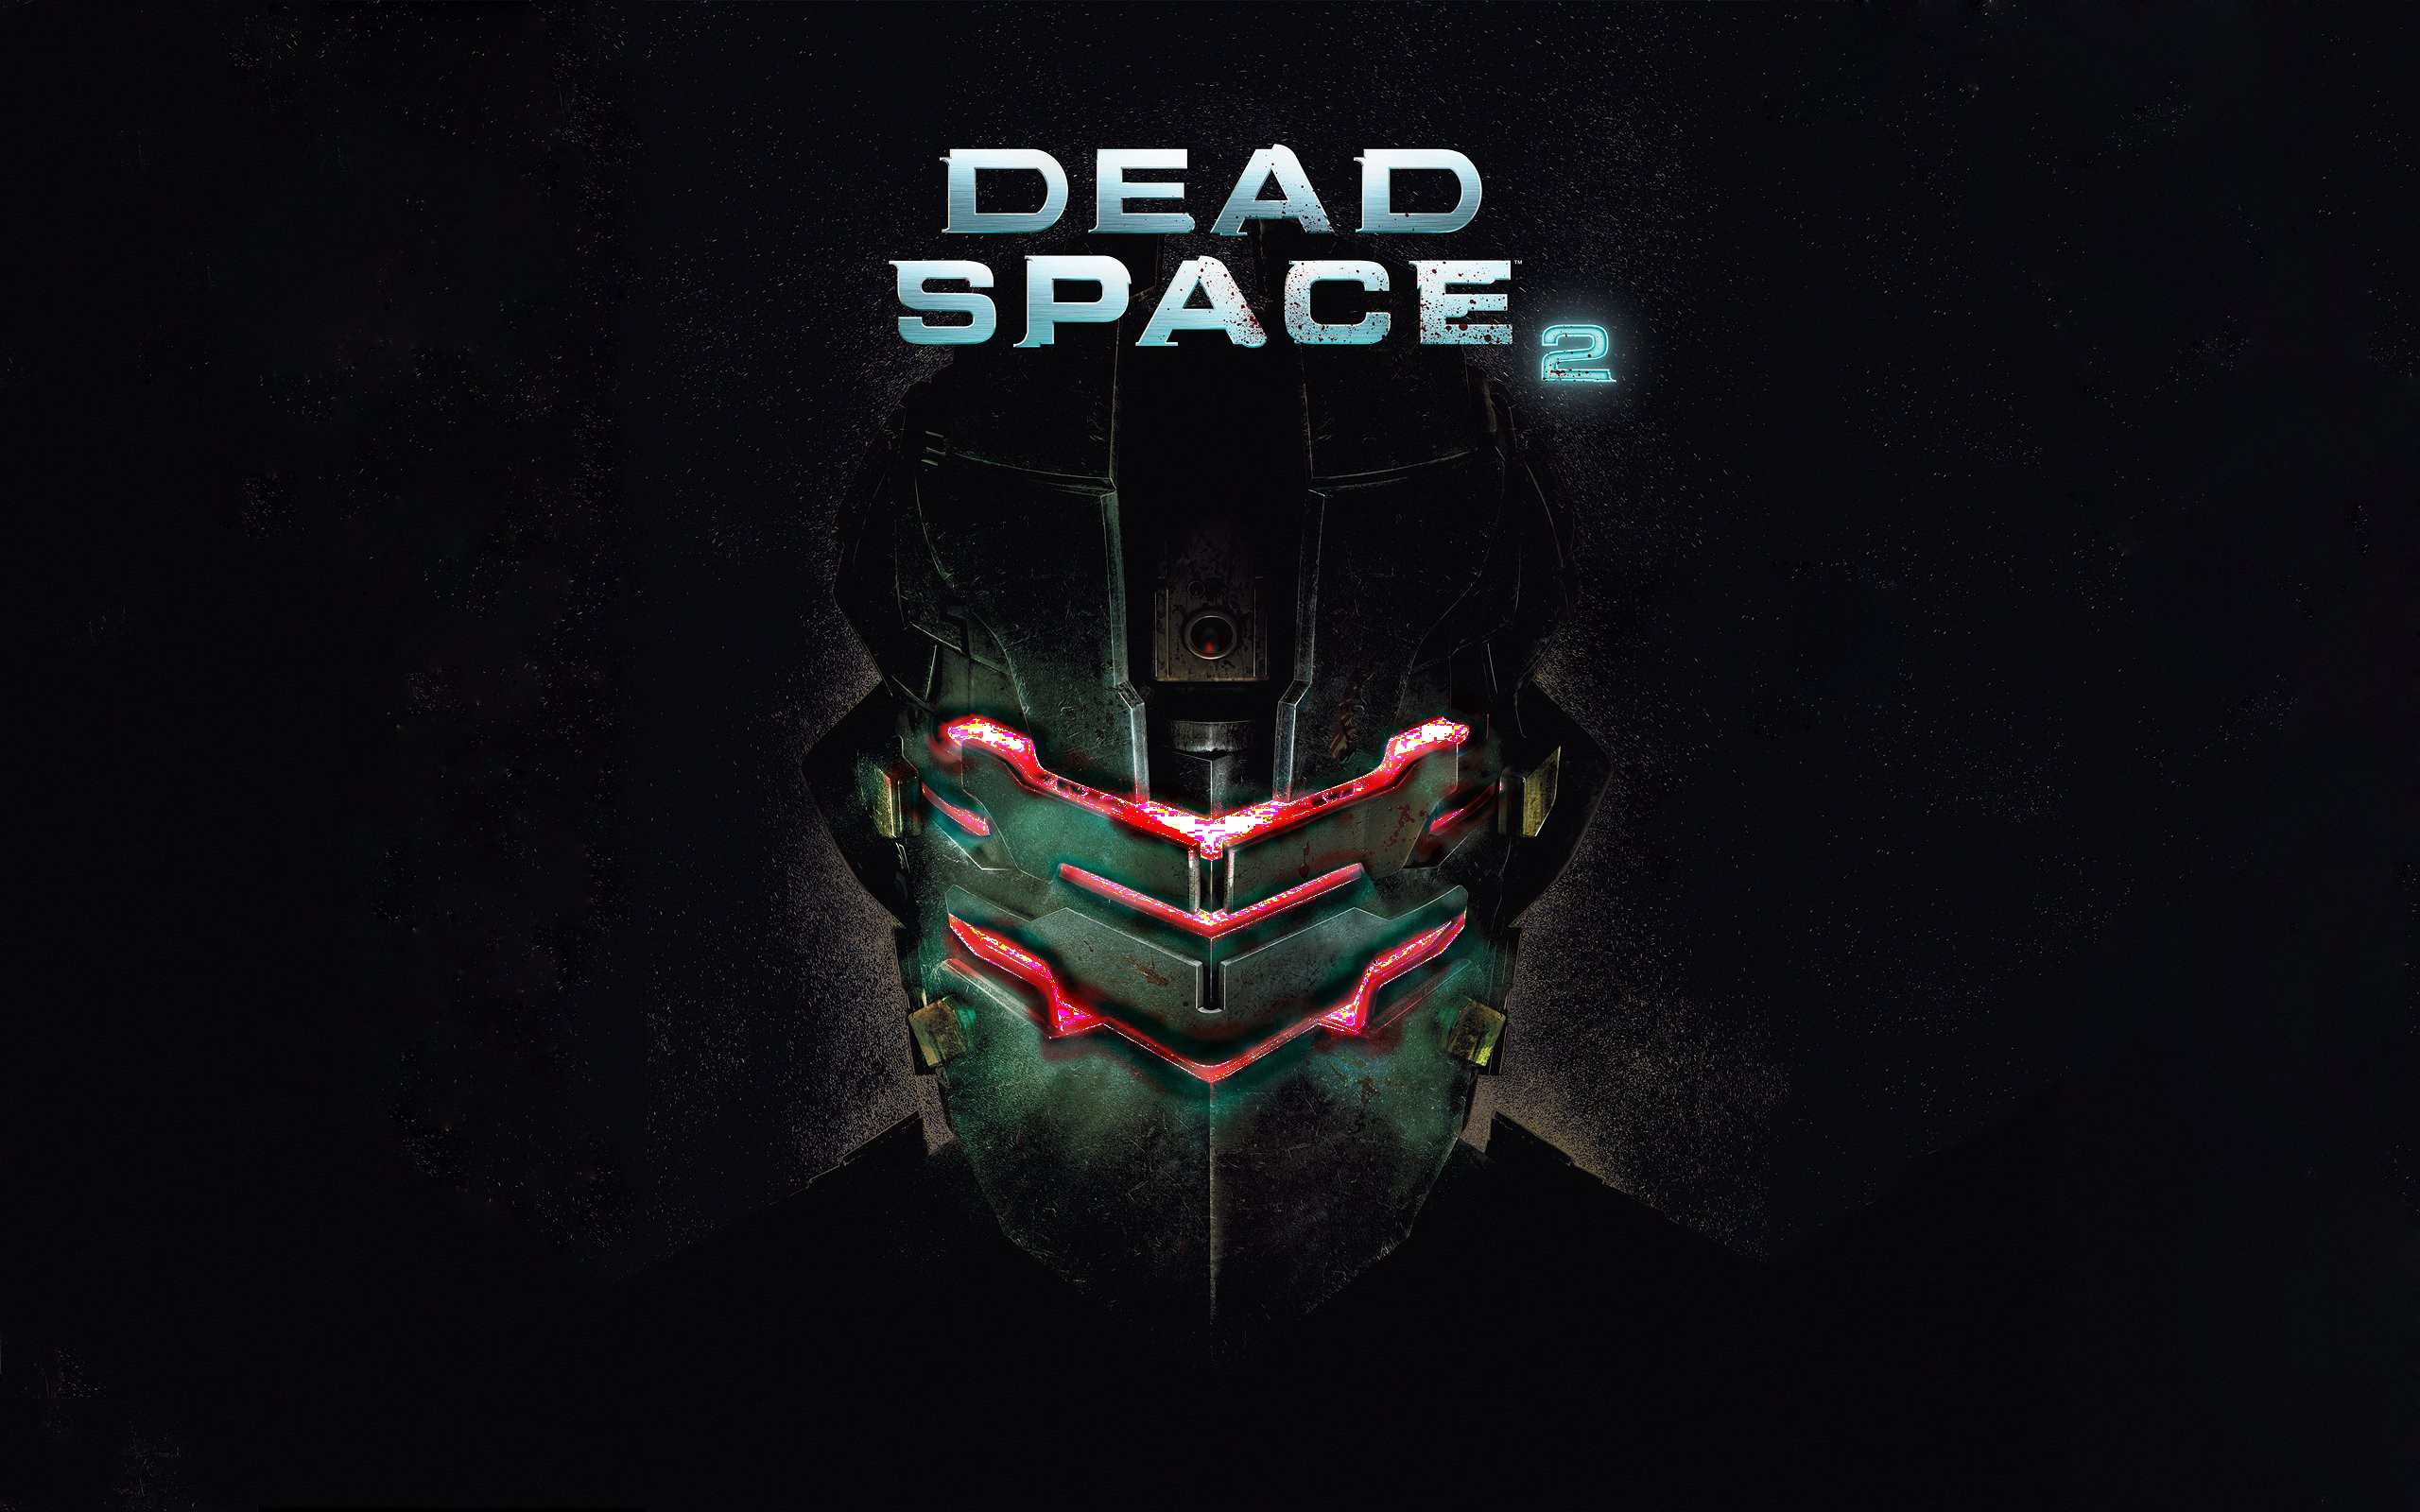 General 2560x1600 Dead Space 2 Dead Space video game art video games